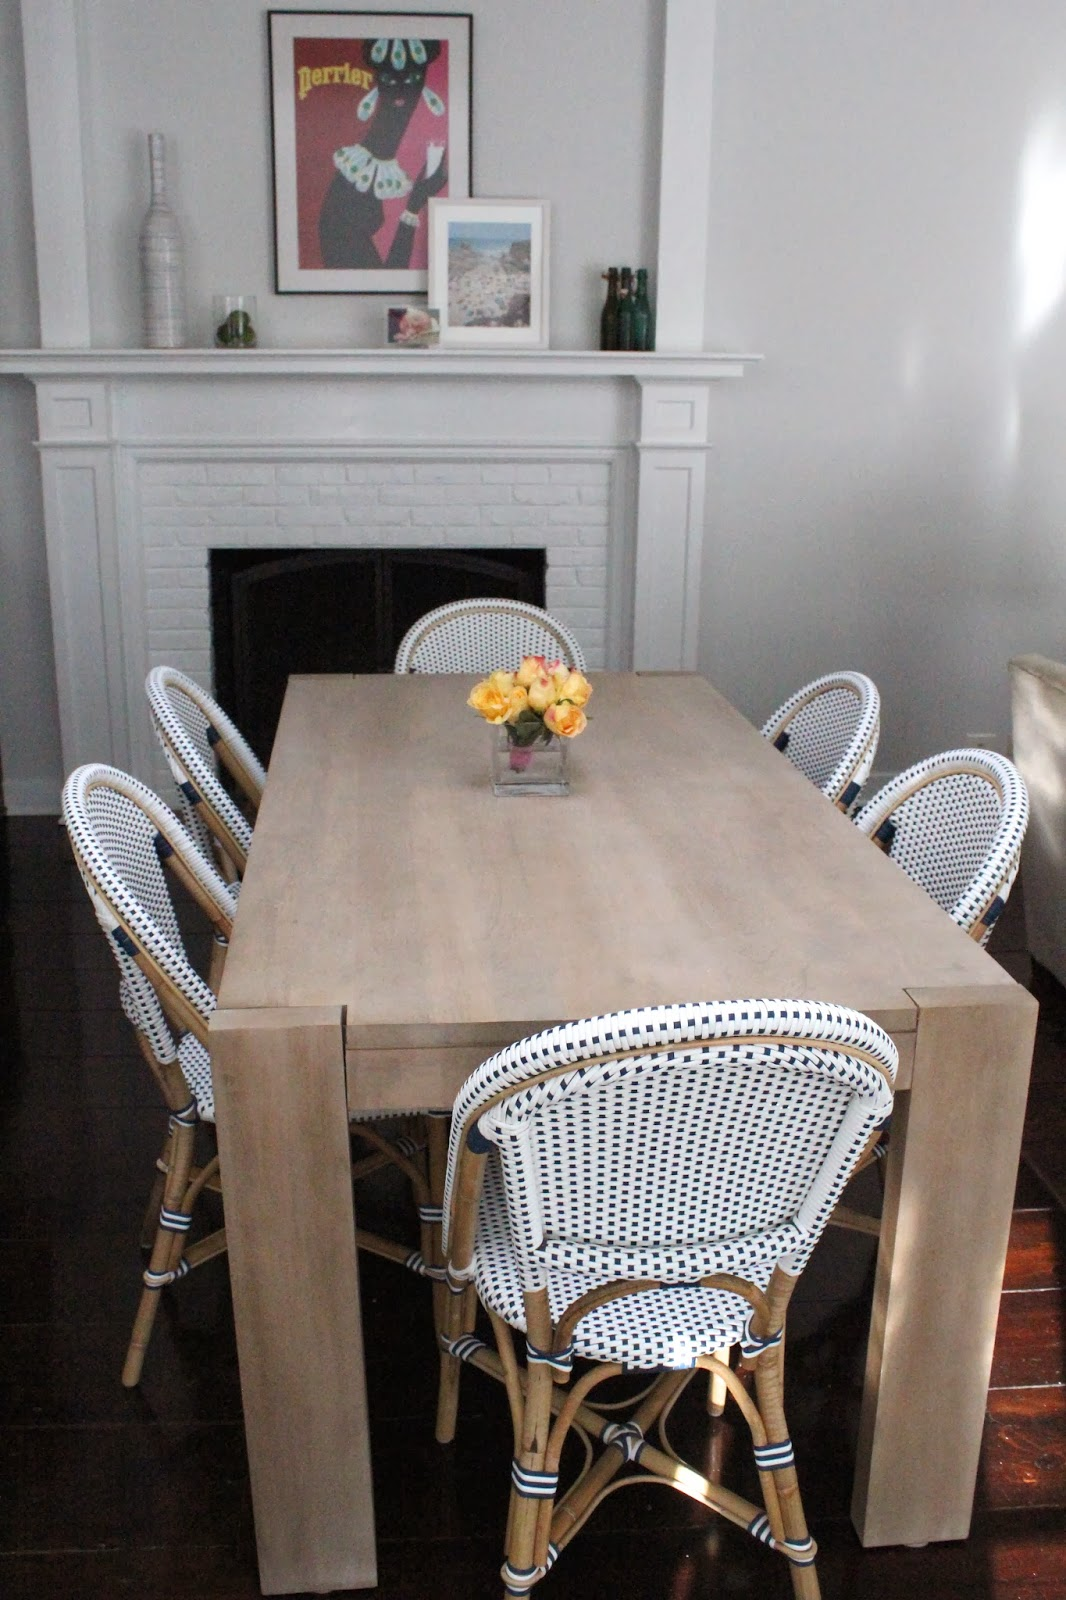 Imperfect Polish Kitchen Table Chairs - West elm table and chairs